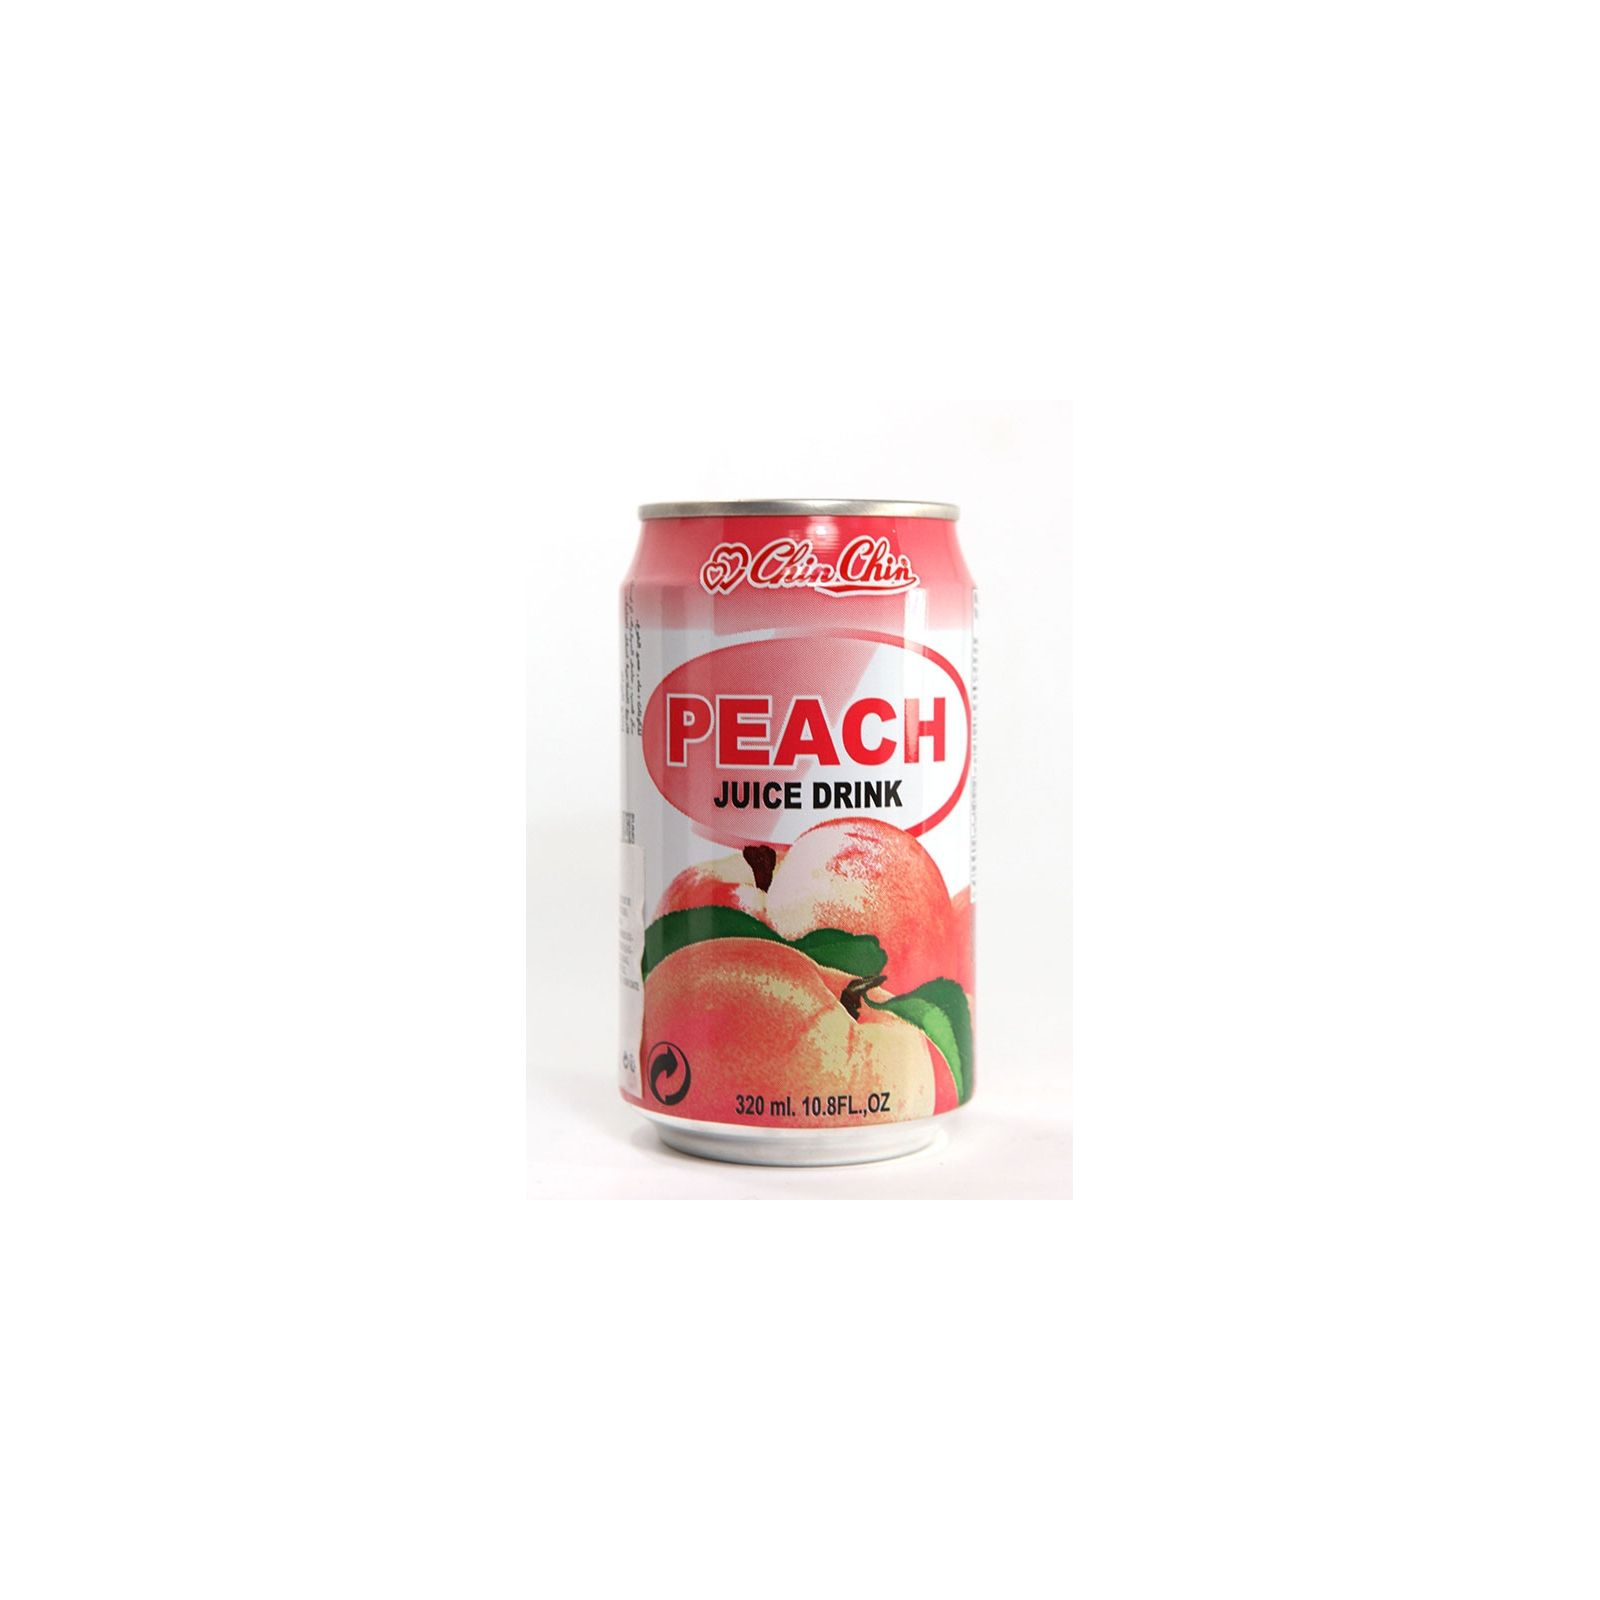 chinchin peach juice drink 178185